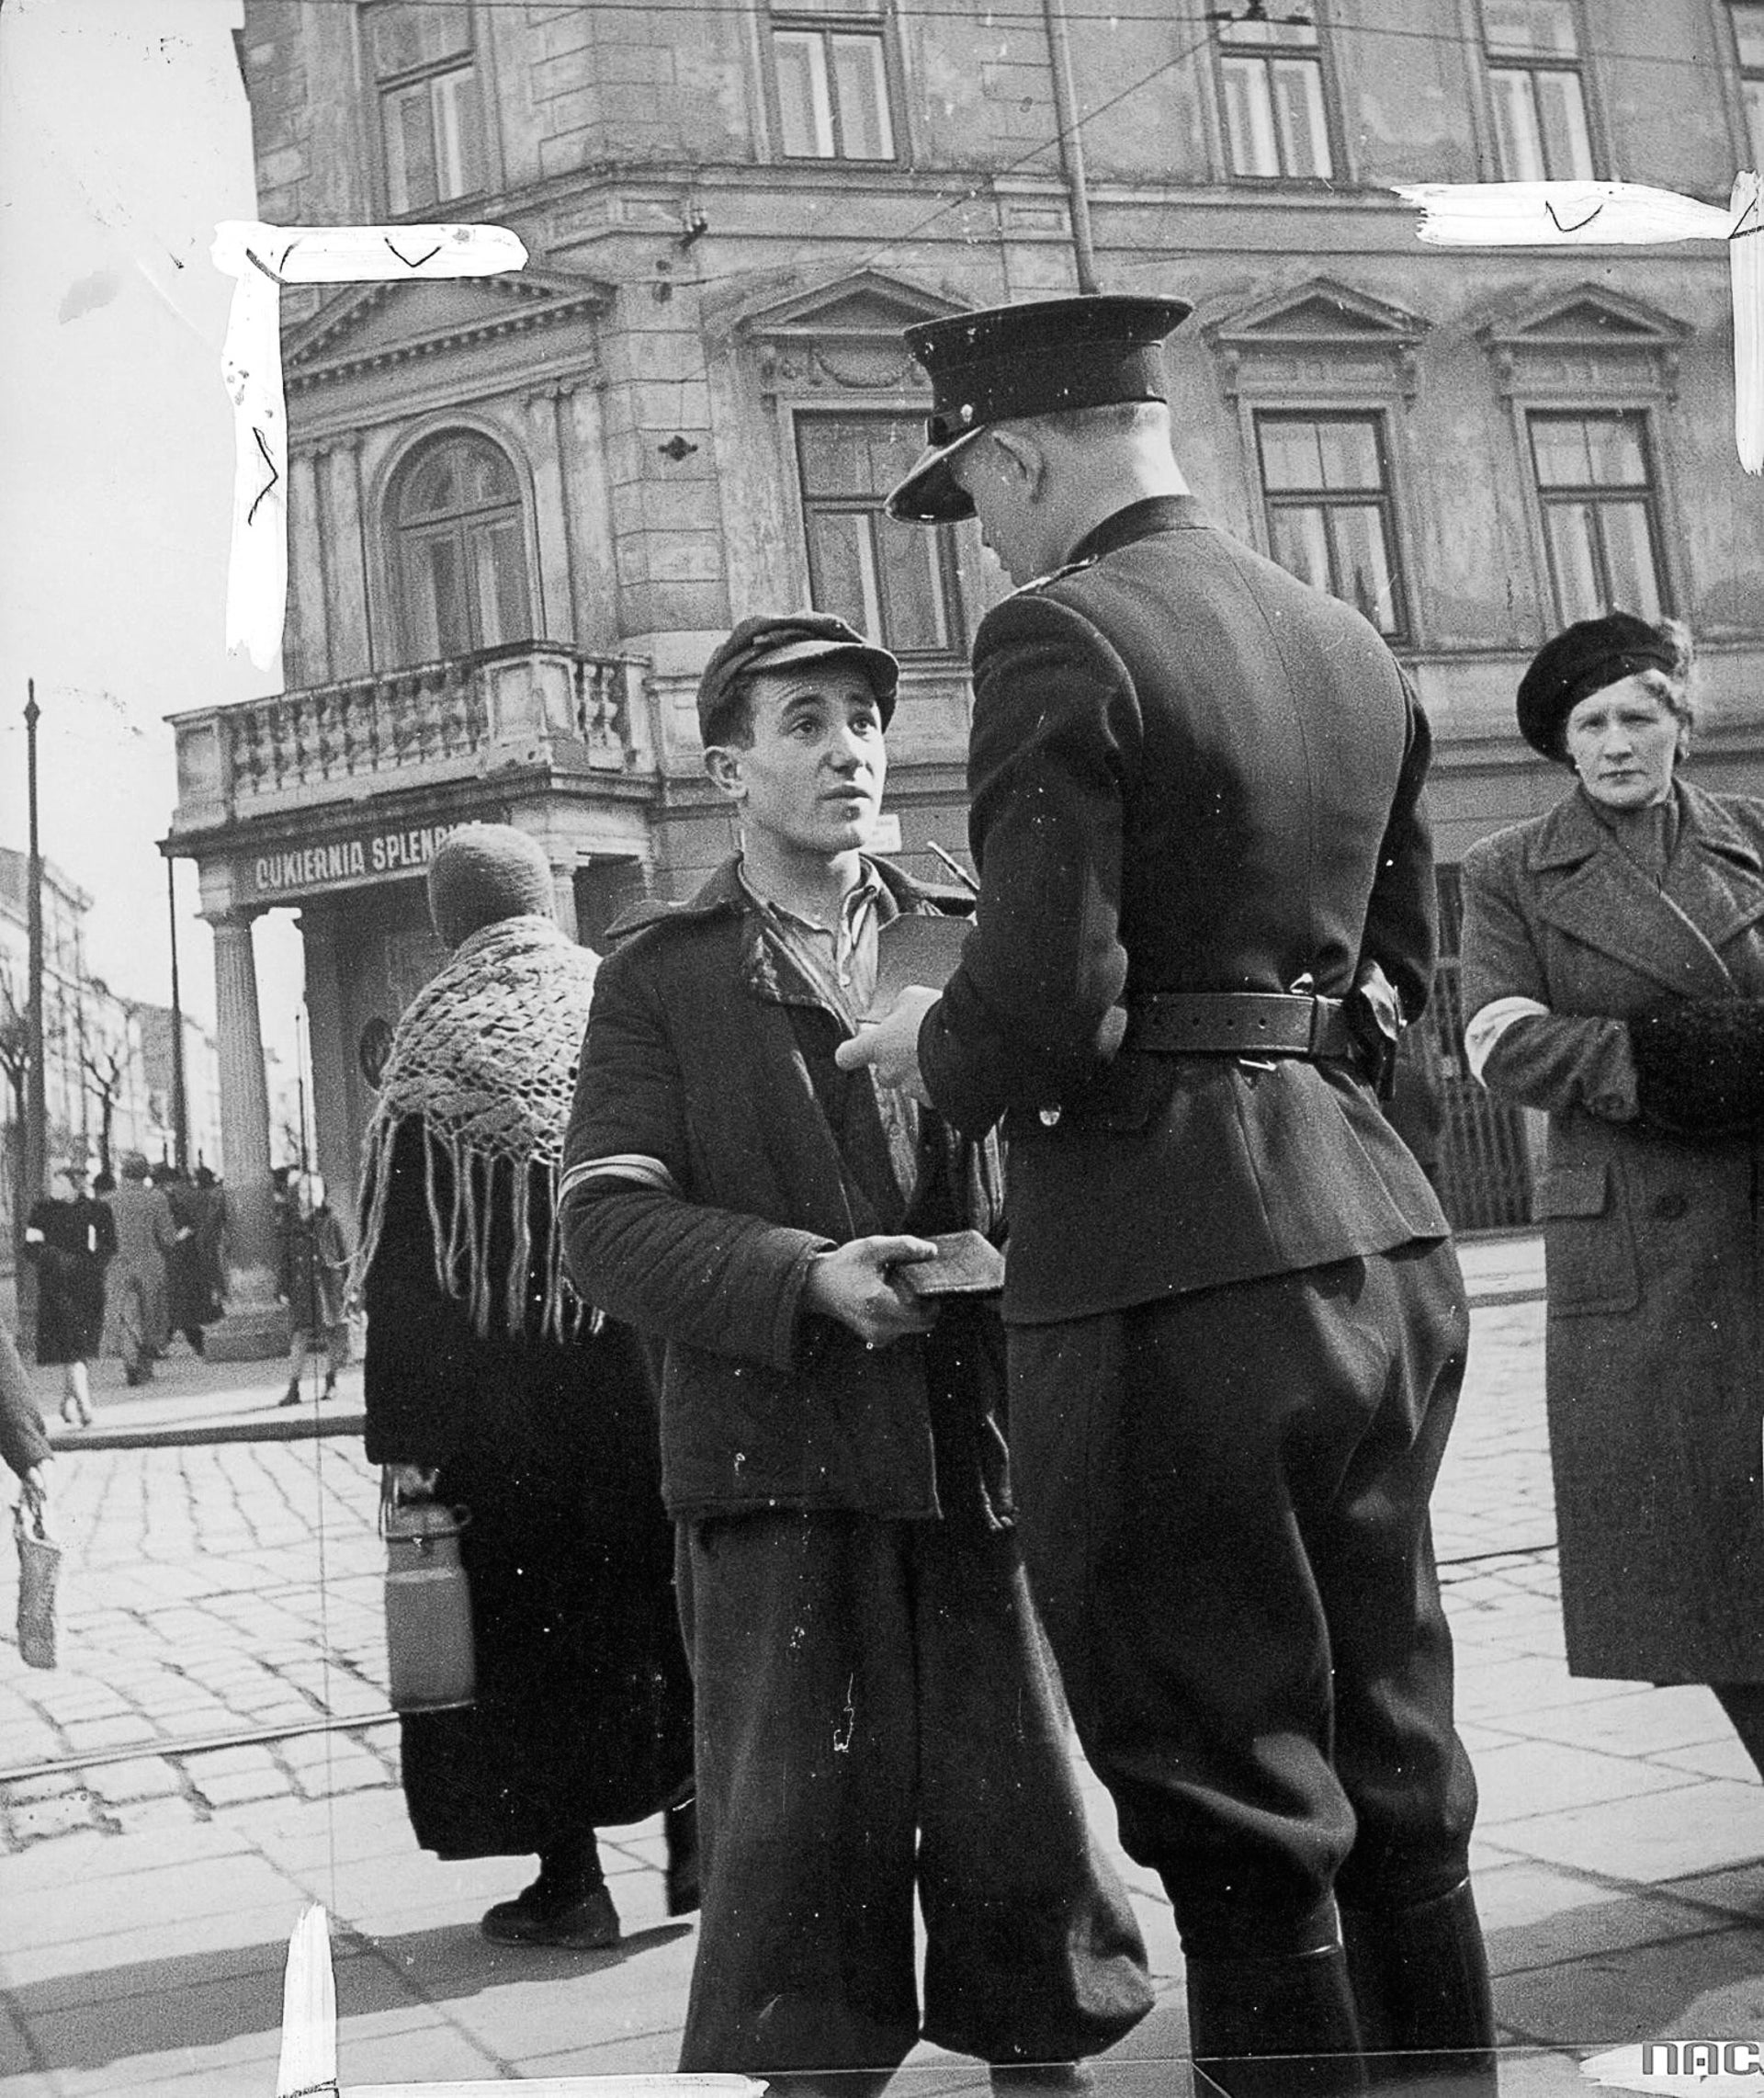 A Polish police officer checks a Jewish man's documents at the Kraków Ghetto, 1941.